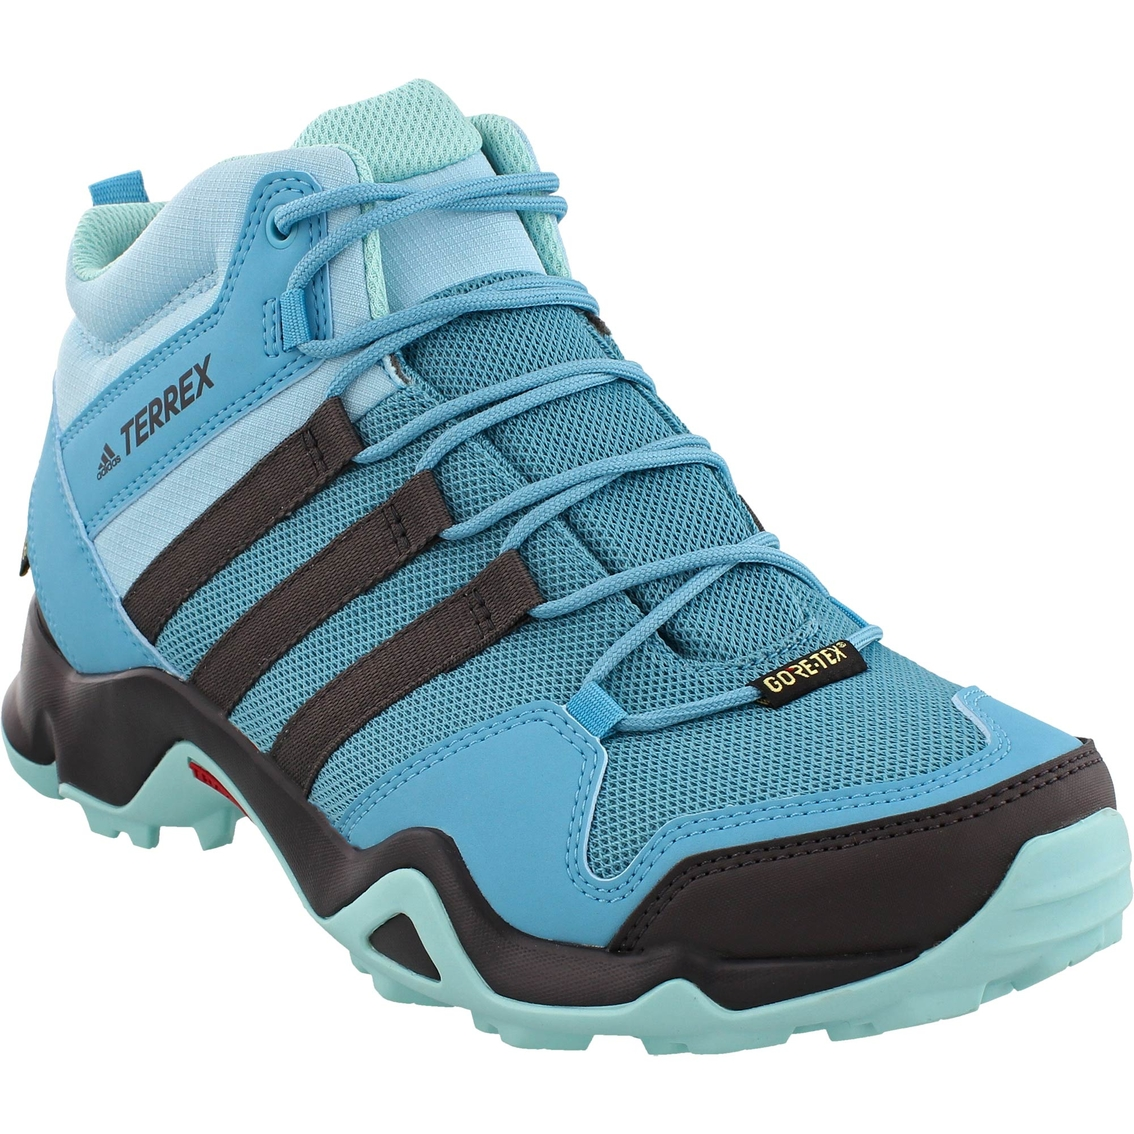 Personas mayores llamar Abandono  Adidas Outdoor Women's Terrex Ax2r Mid Gtx Shoes | Hiking & Trail | Shoes |  Shop The Exchange